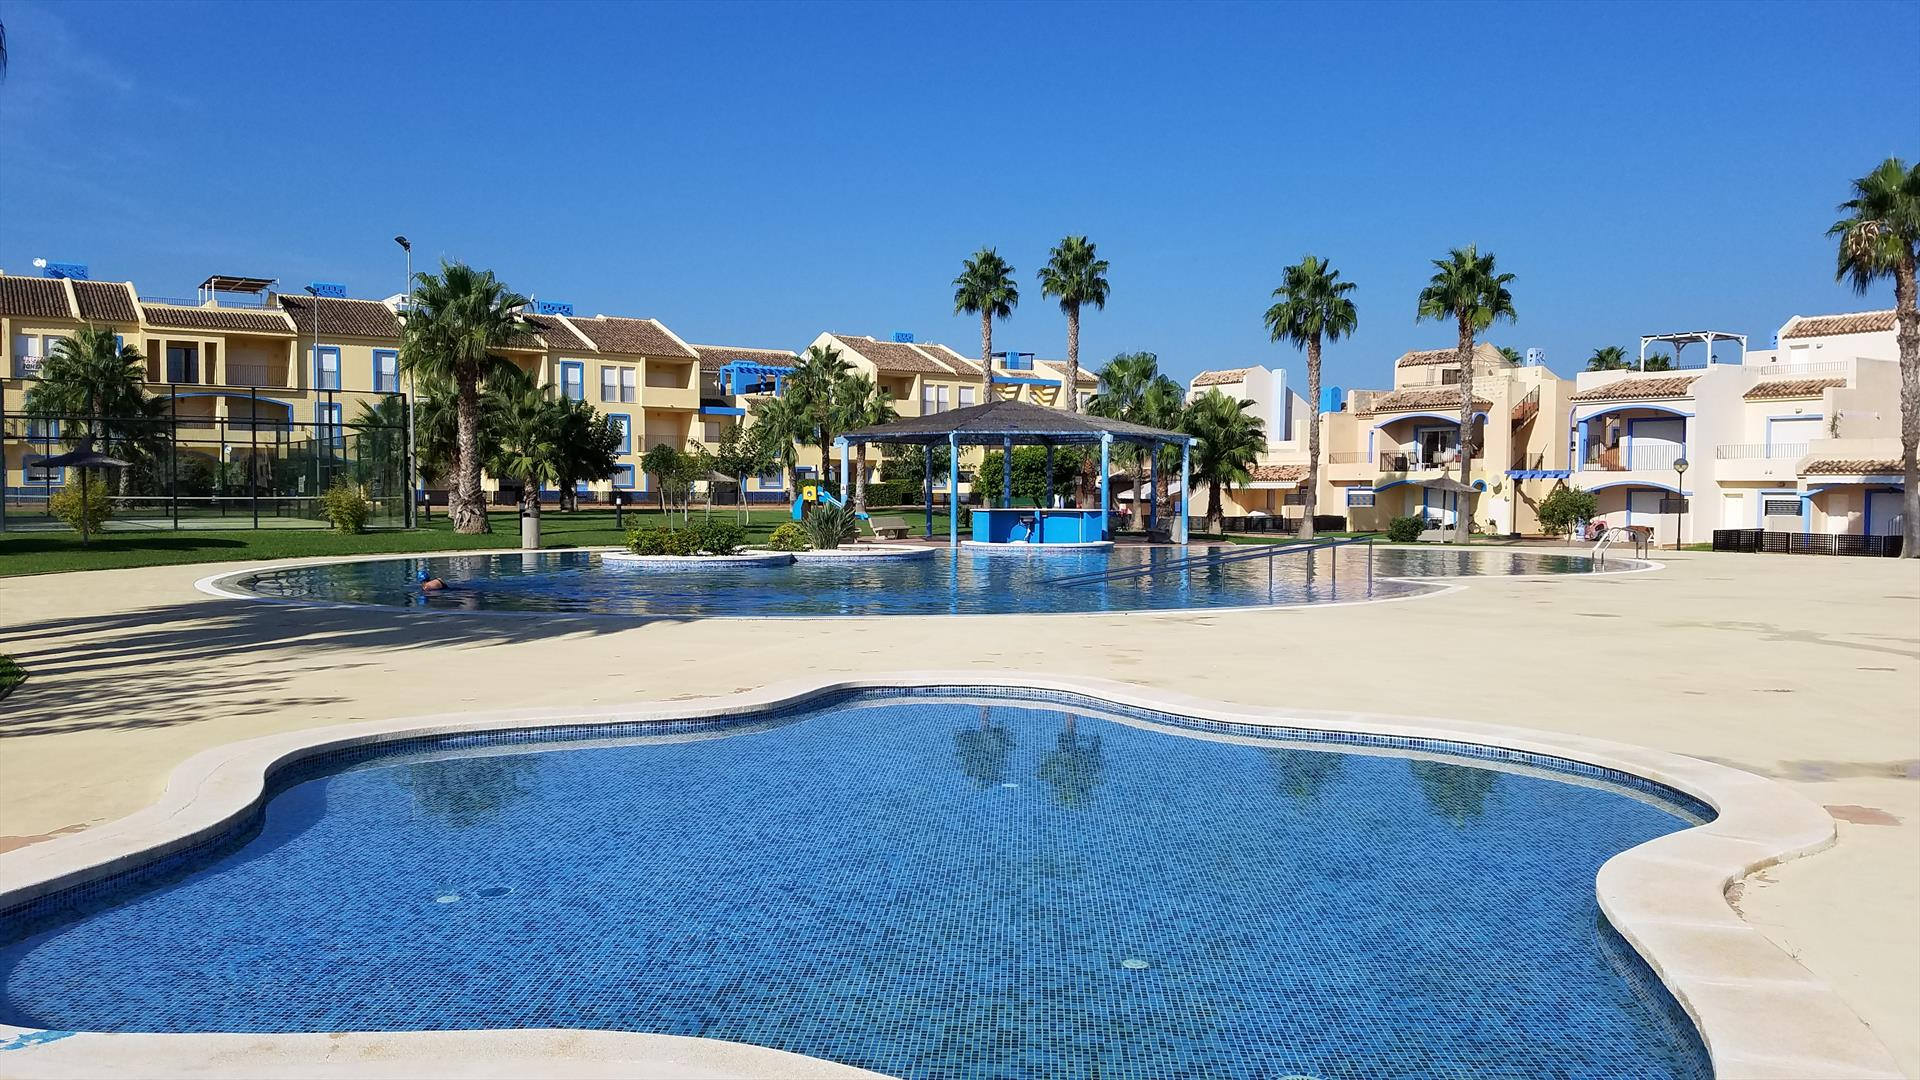 Paradise El Vergel PB2207,Modern and comfortable apartment in Denia, on the Costa Blanca, Spain  with communal pool for 7 persons.....